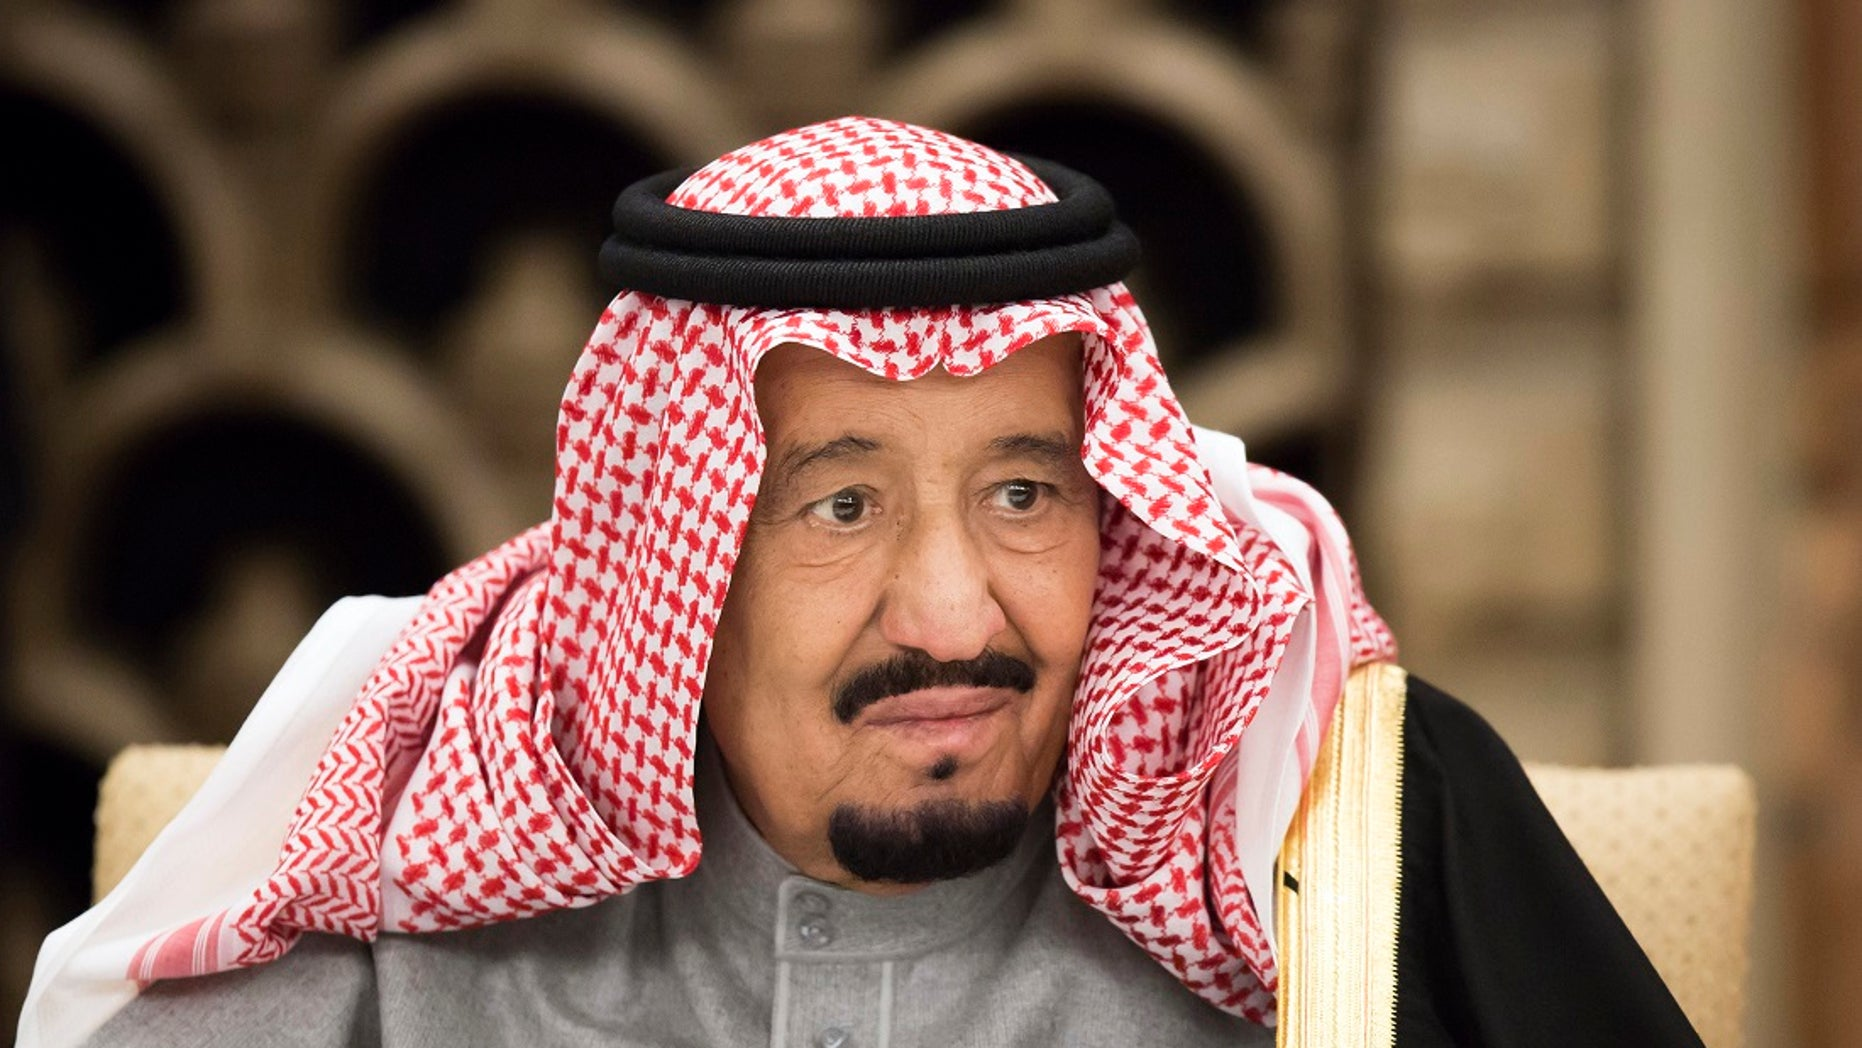 President Donald Trump is scheduled to meet King Salman, pictured in 2013, when he travels to Saudi Arabia as part of his first foreign trip.